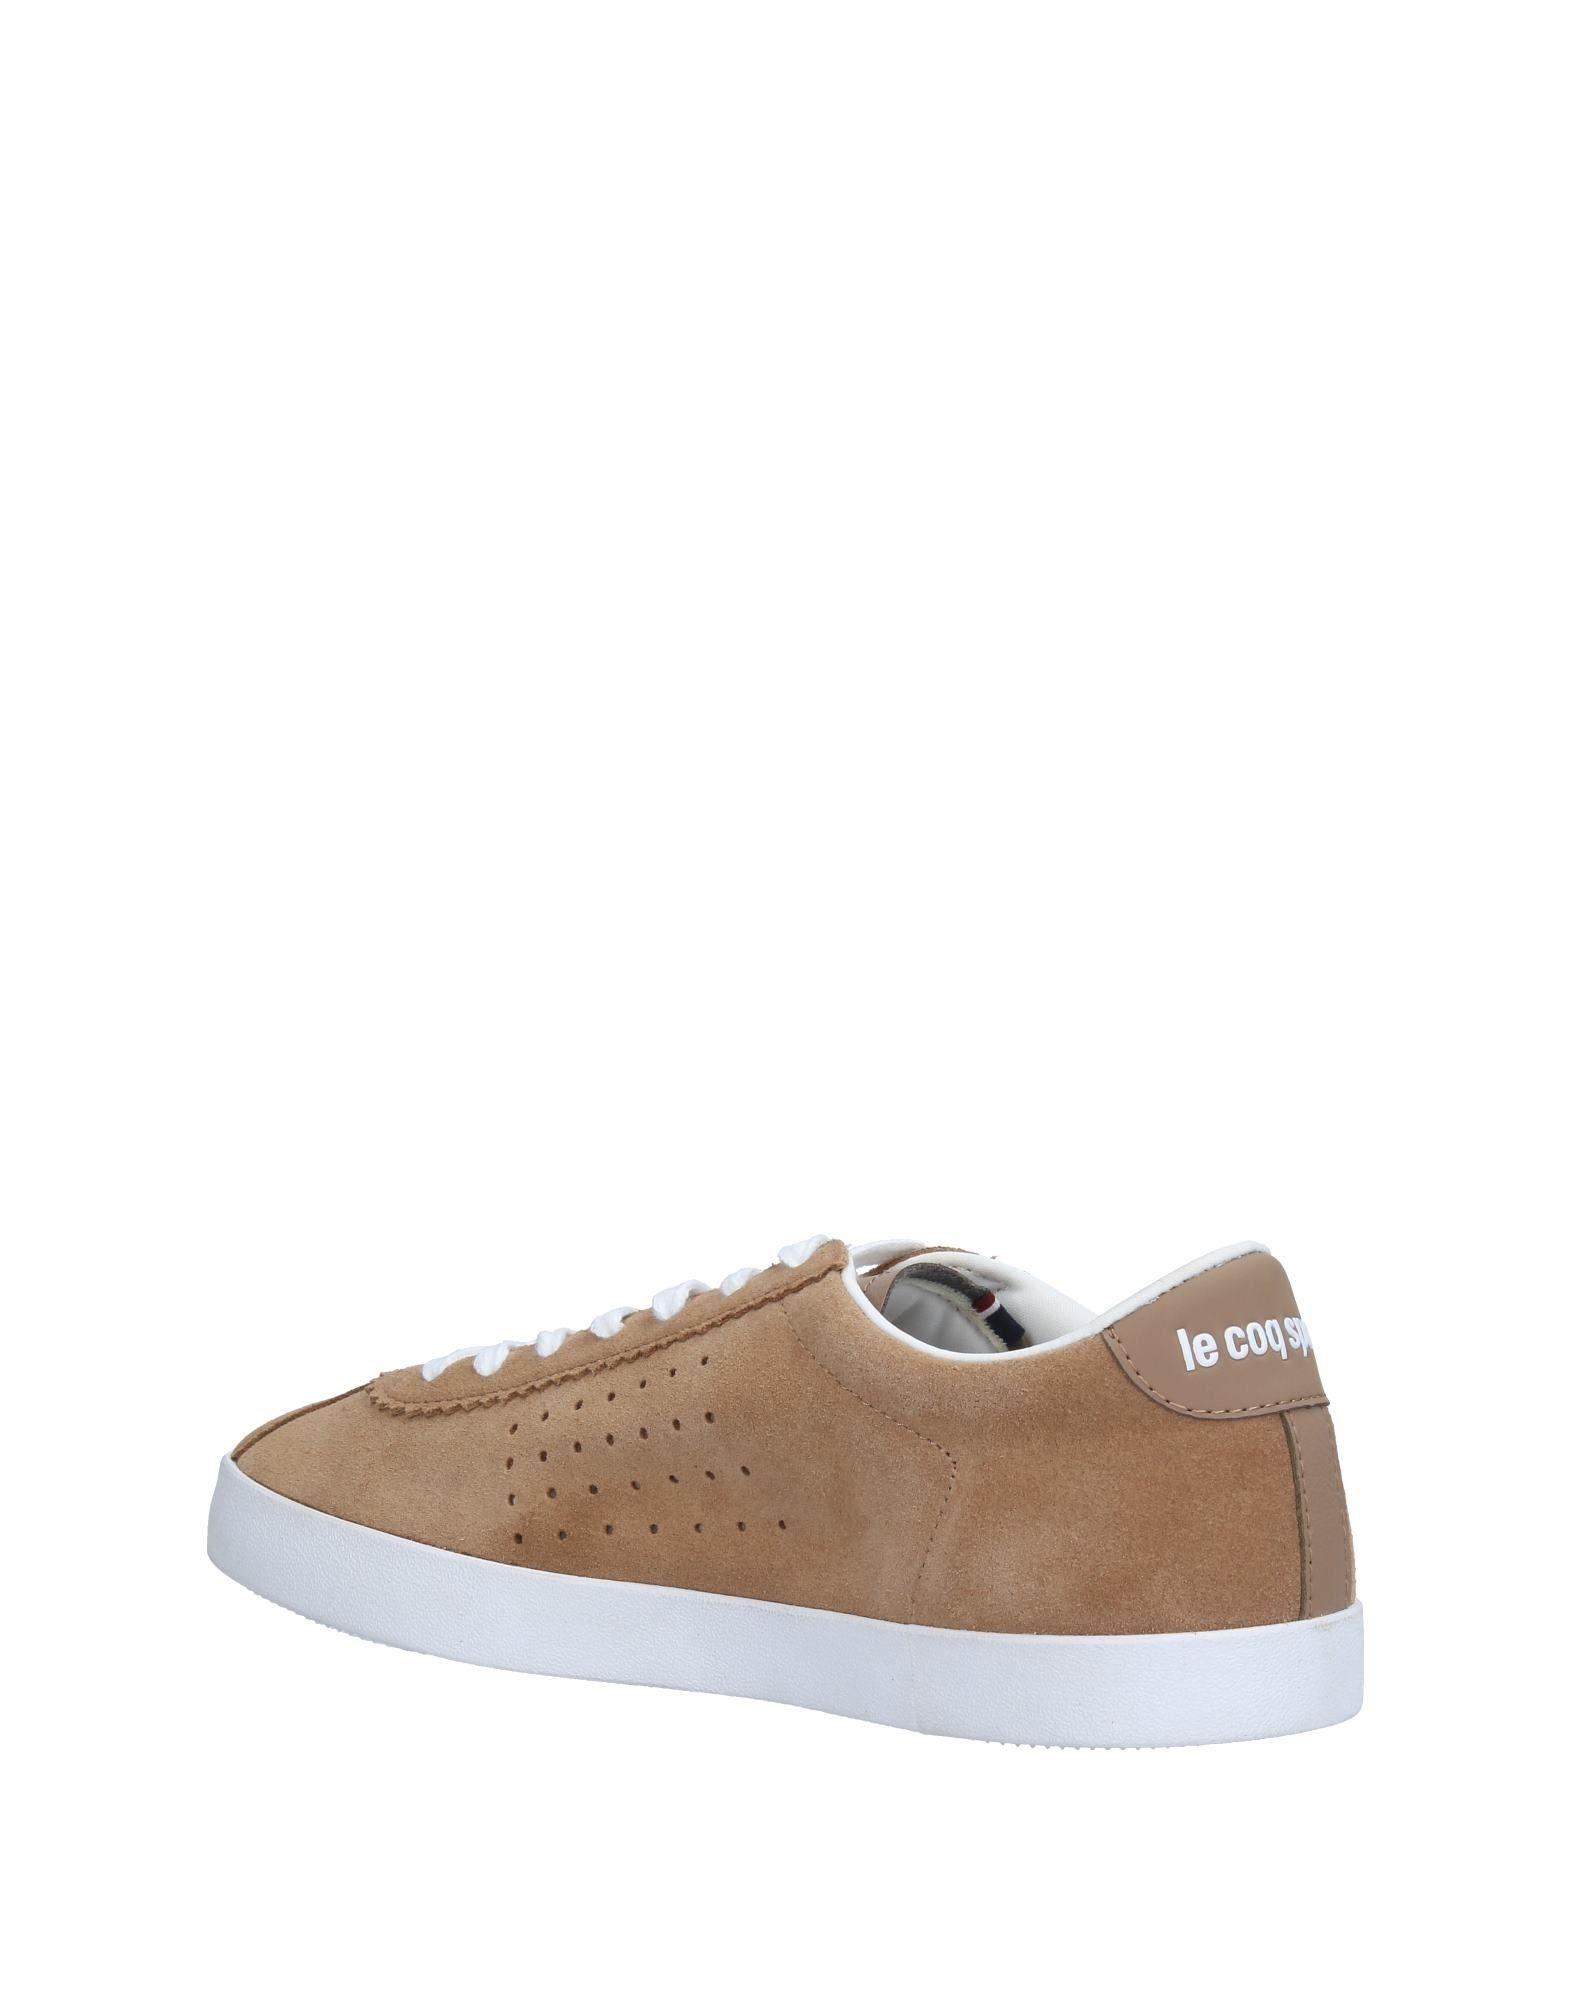 Le Coq Sportif Low Tops Amp Sneakers In Natural